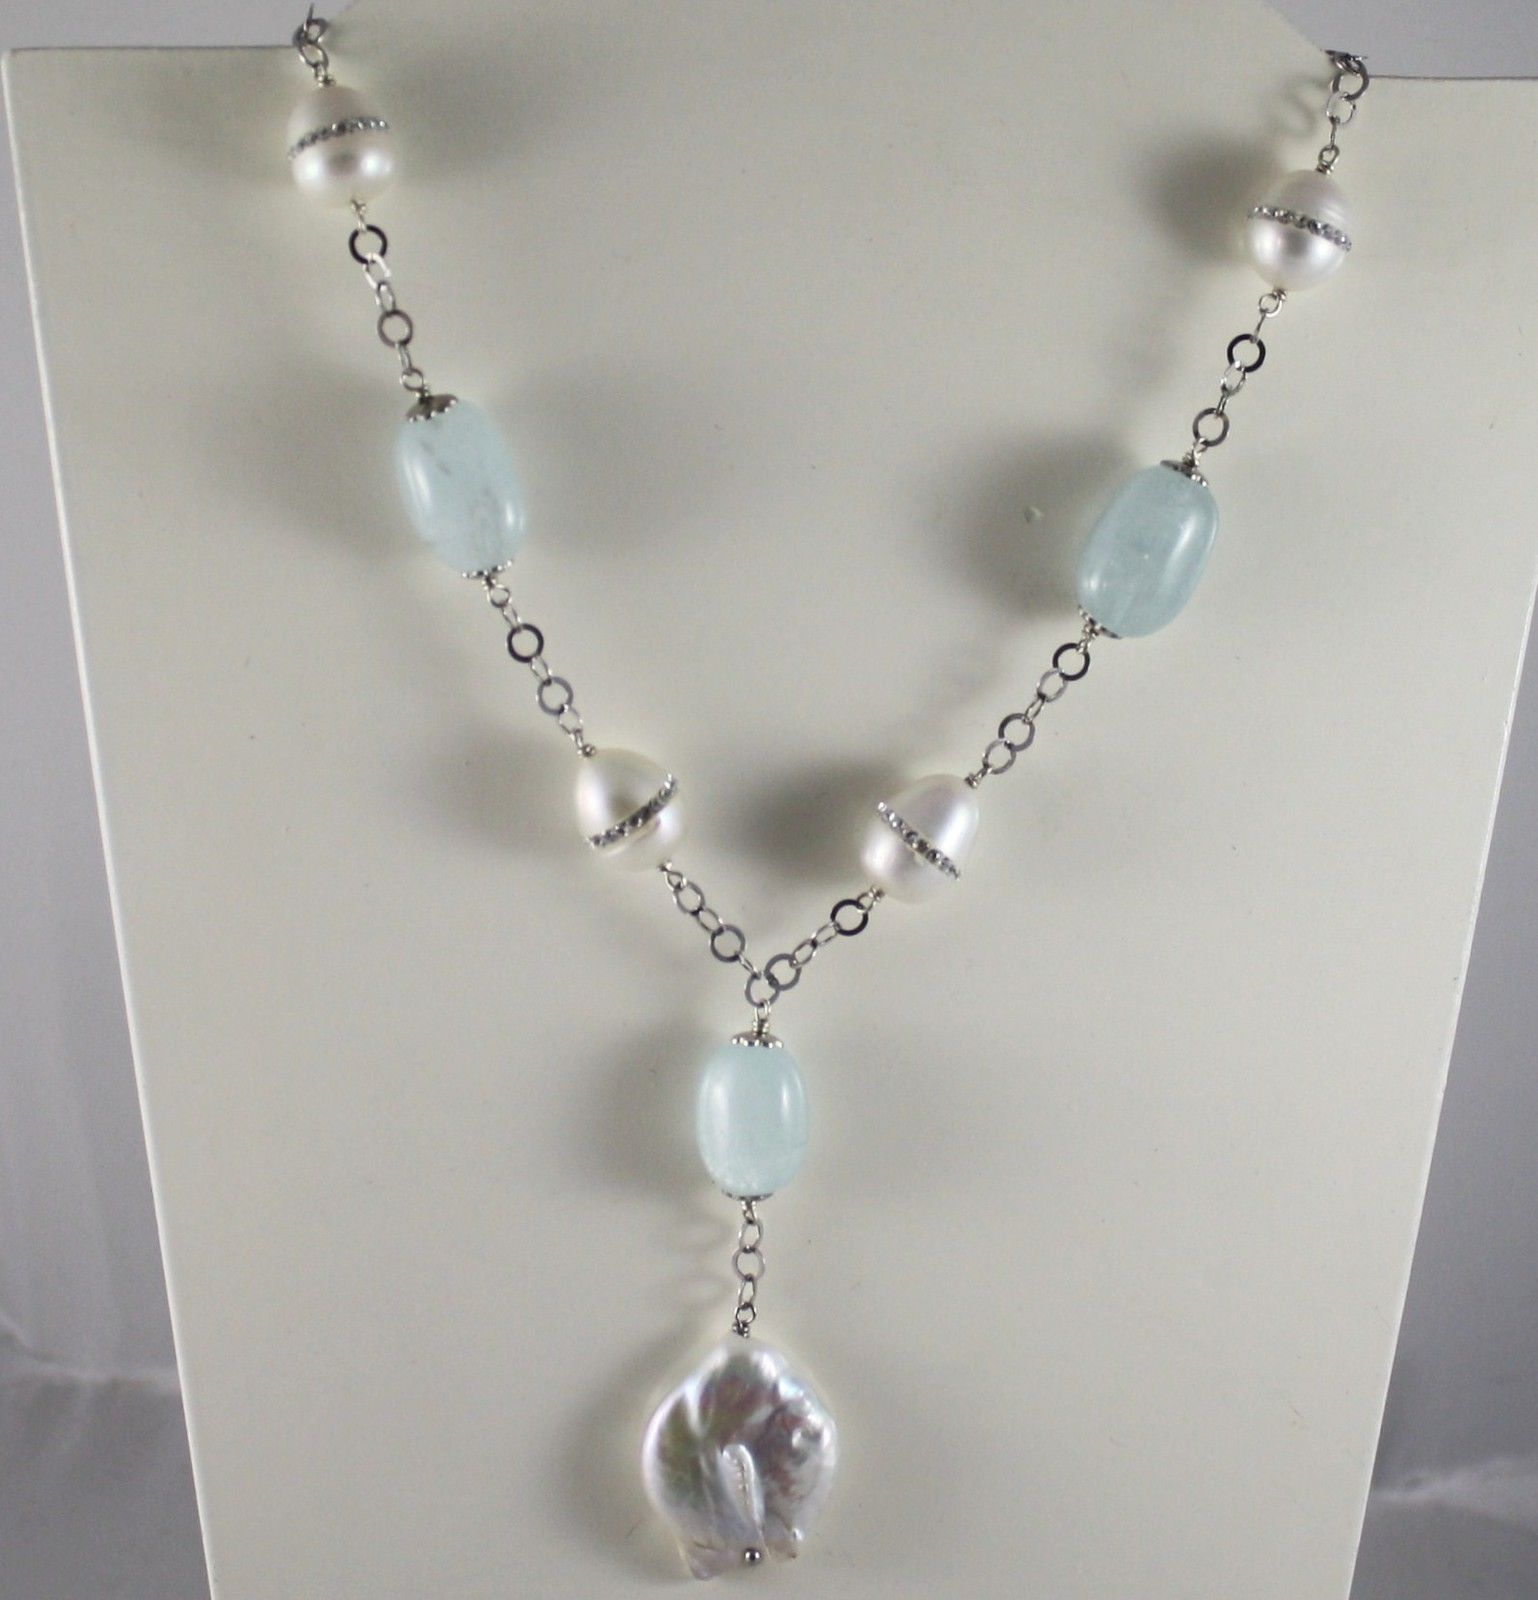 SOLID .925 STERLING SILVER NECKLACE WITH NATURAL AQUAMARINE AND PEARLS